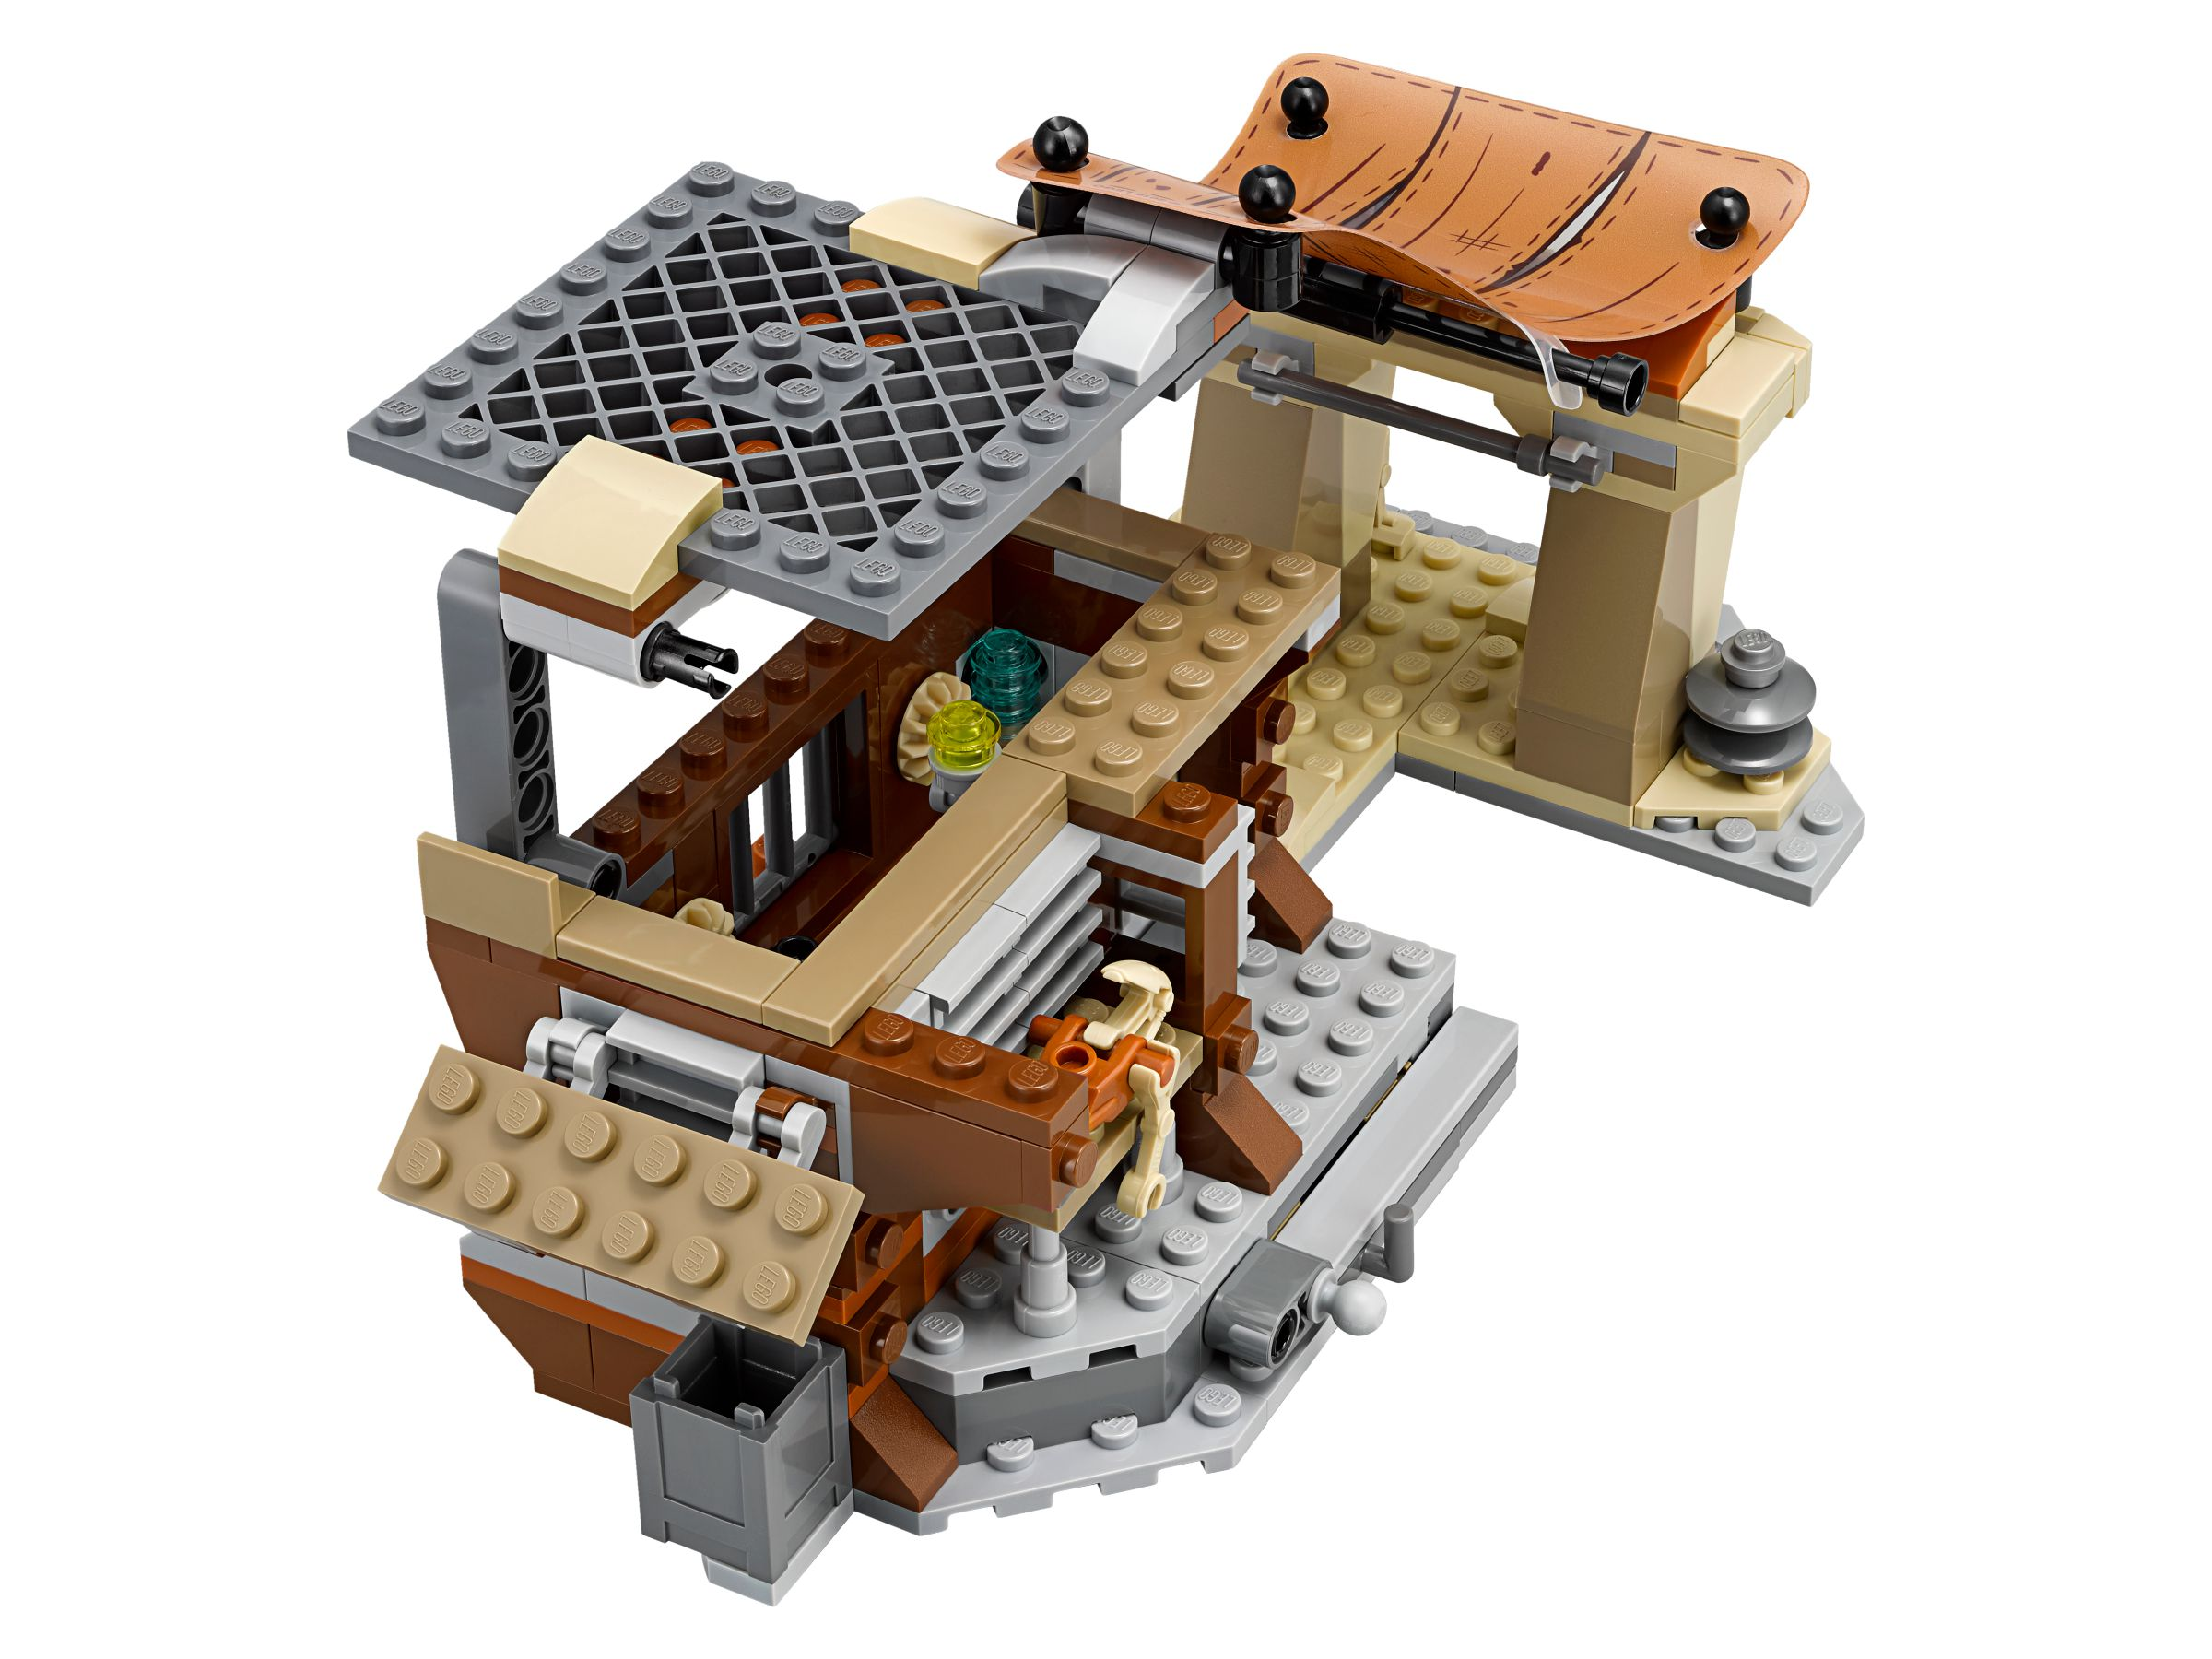 LEGO Star Wars 75148 Encounter on Jakku™ LEGO_75148_alt4.jpg